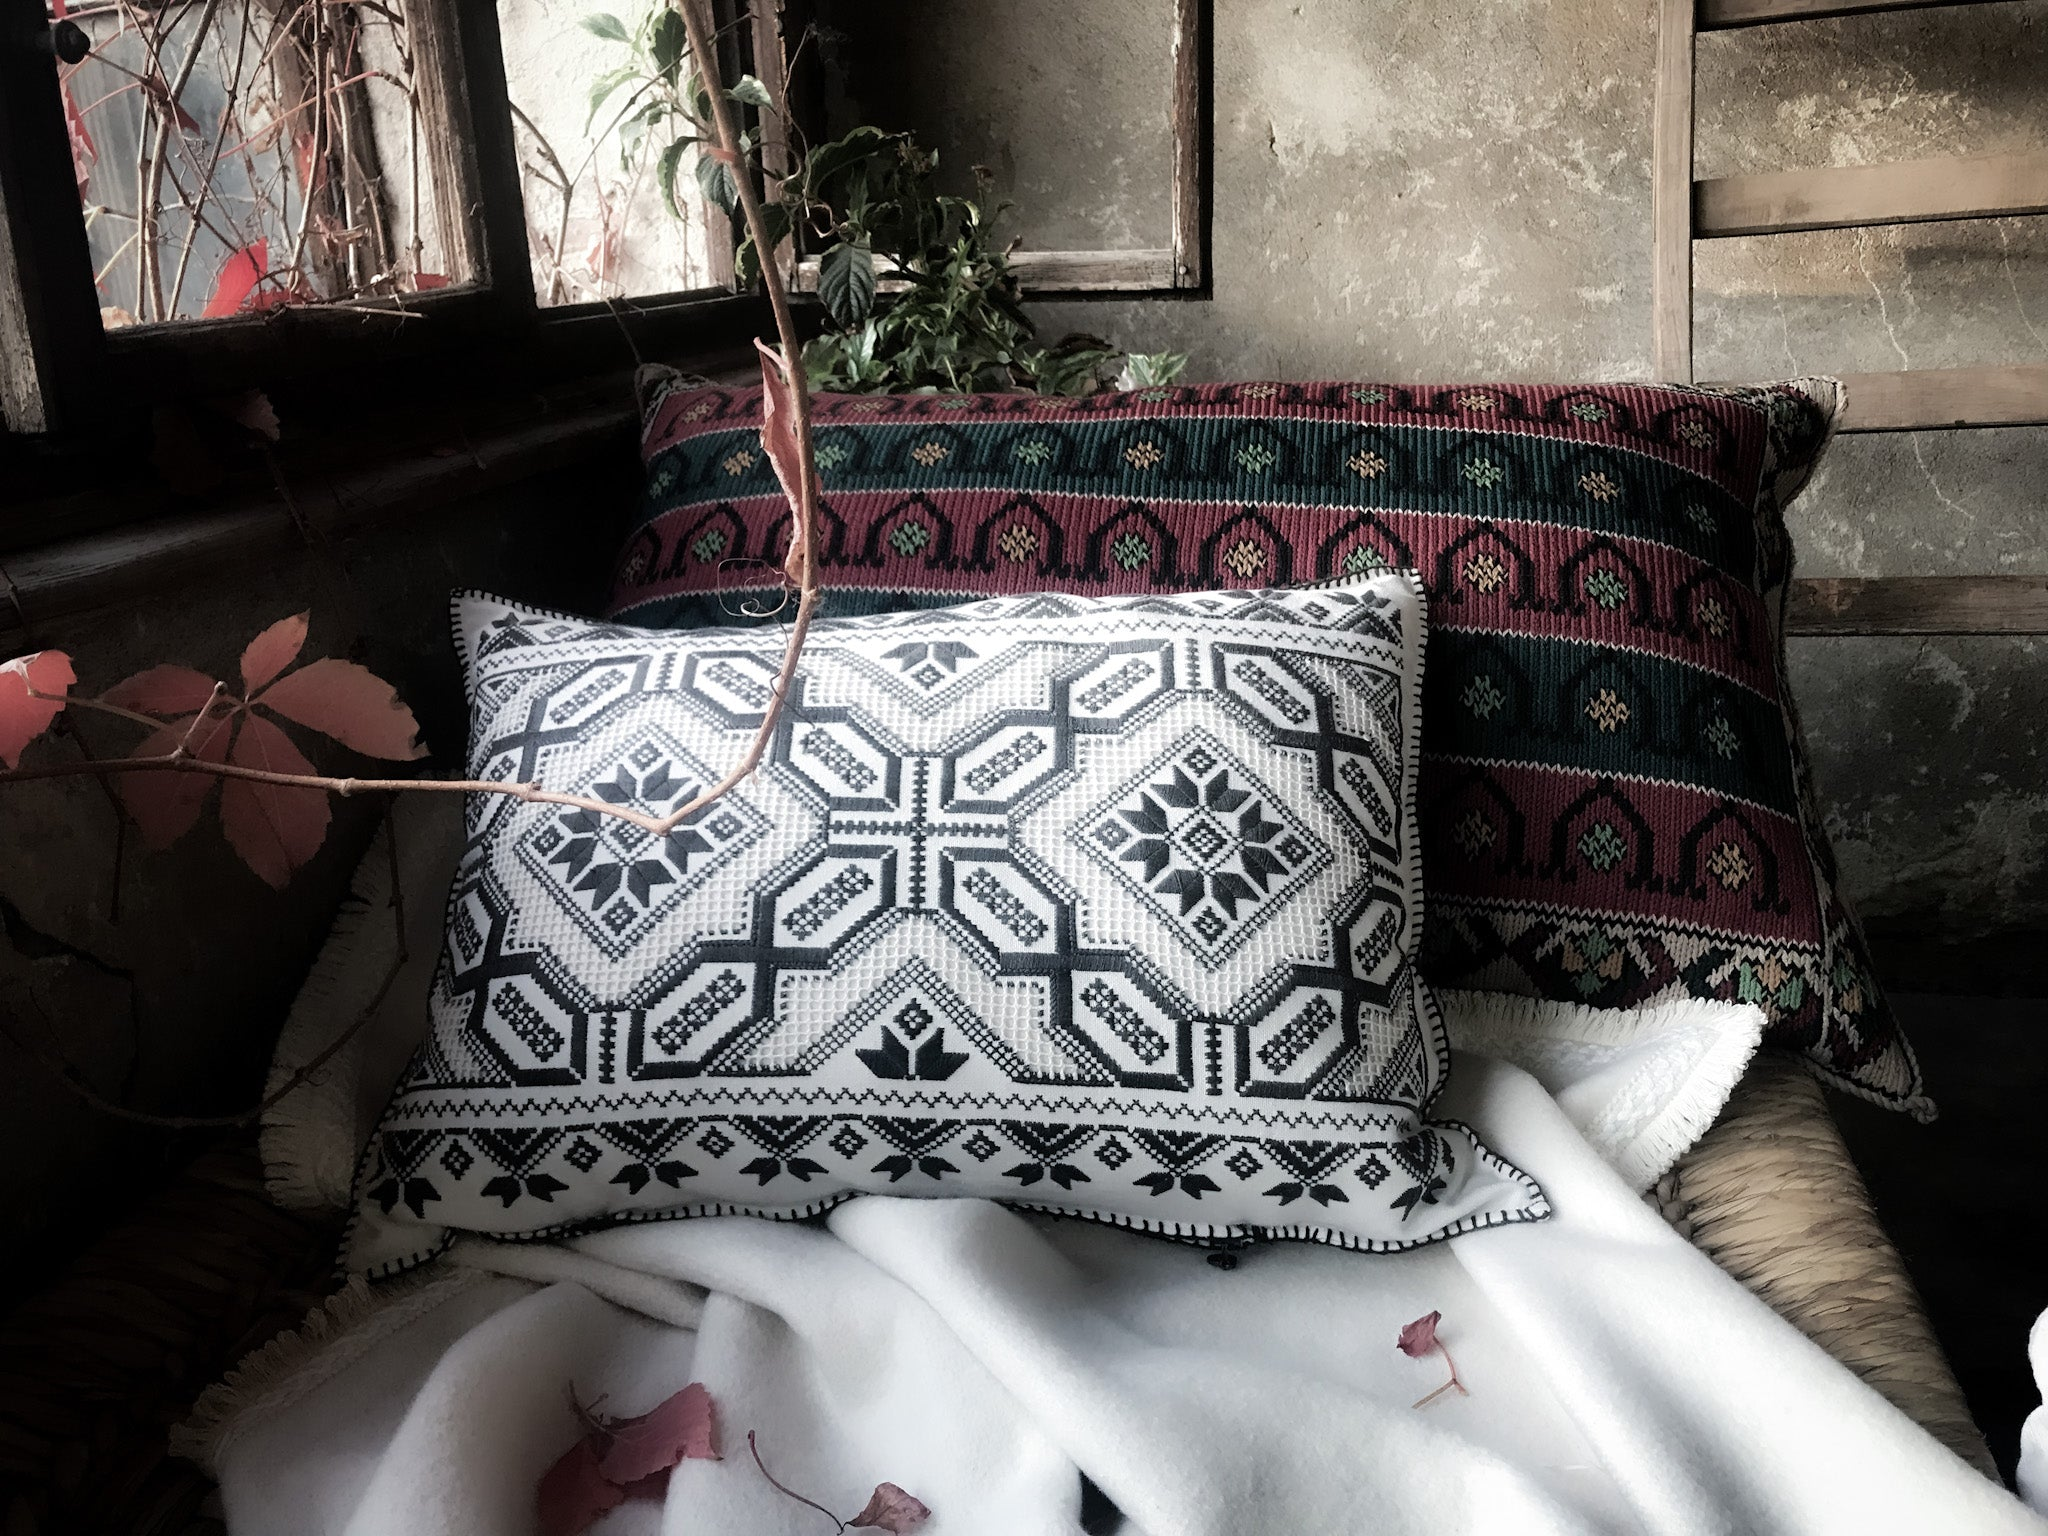 Pillow: Cross stitch/handworked antique Hungarian hemp - P021